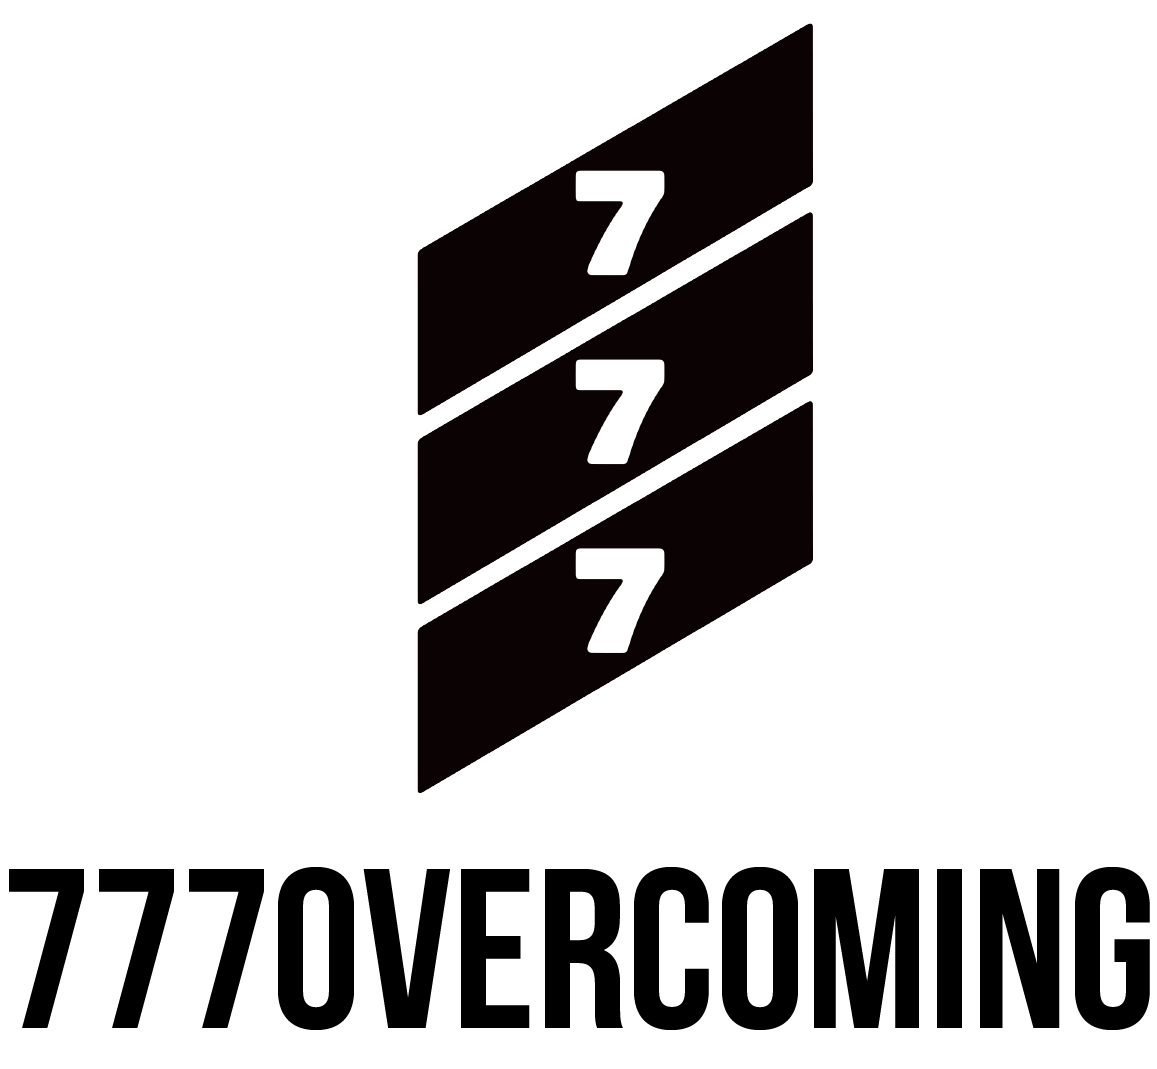 777_logo_Overcoming_black.png